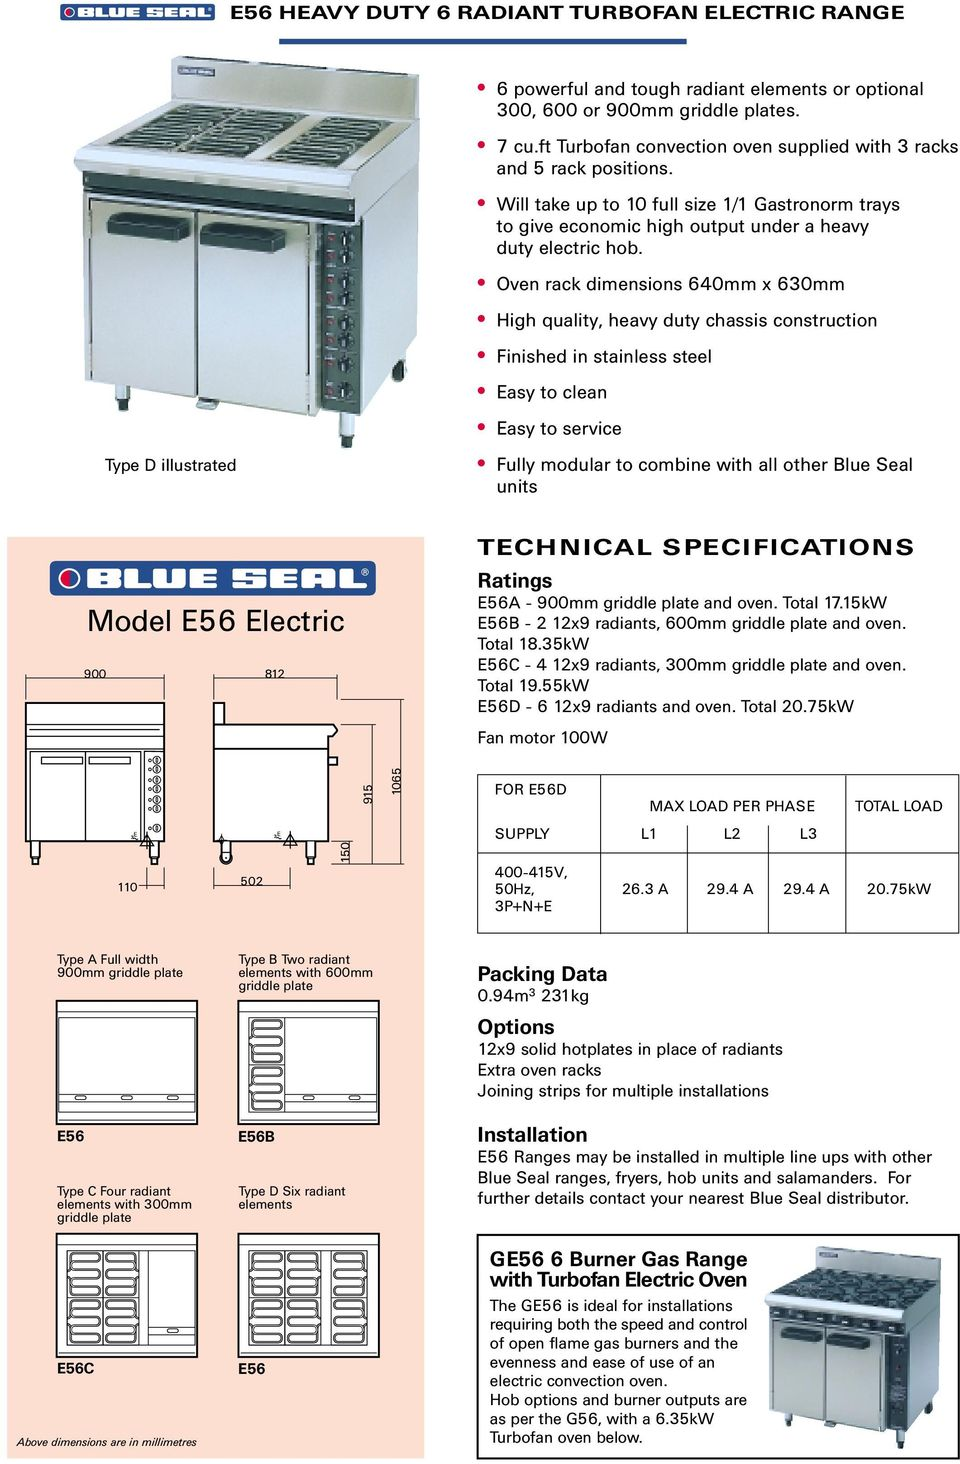 Oven rack dimensions 640mm x 630mm High quality, heavy duty chassis construction Fully modular to combine with all other Blue Seal units Model E56 Electric 900 E56A - 900mm and oven. Total 17.